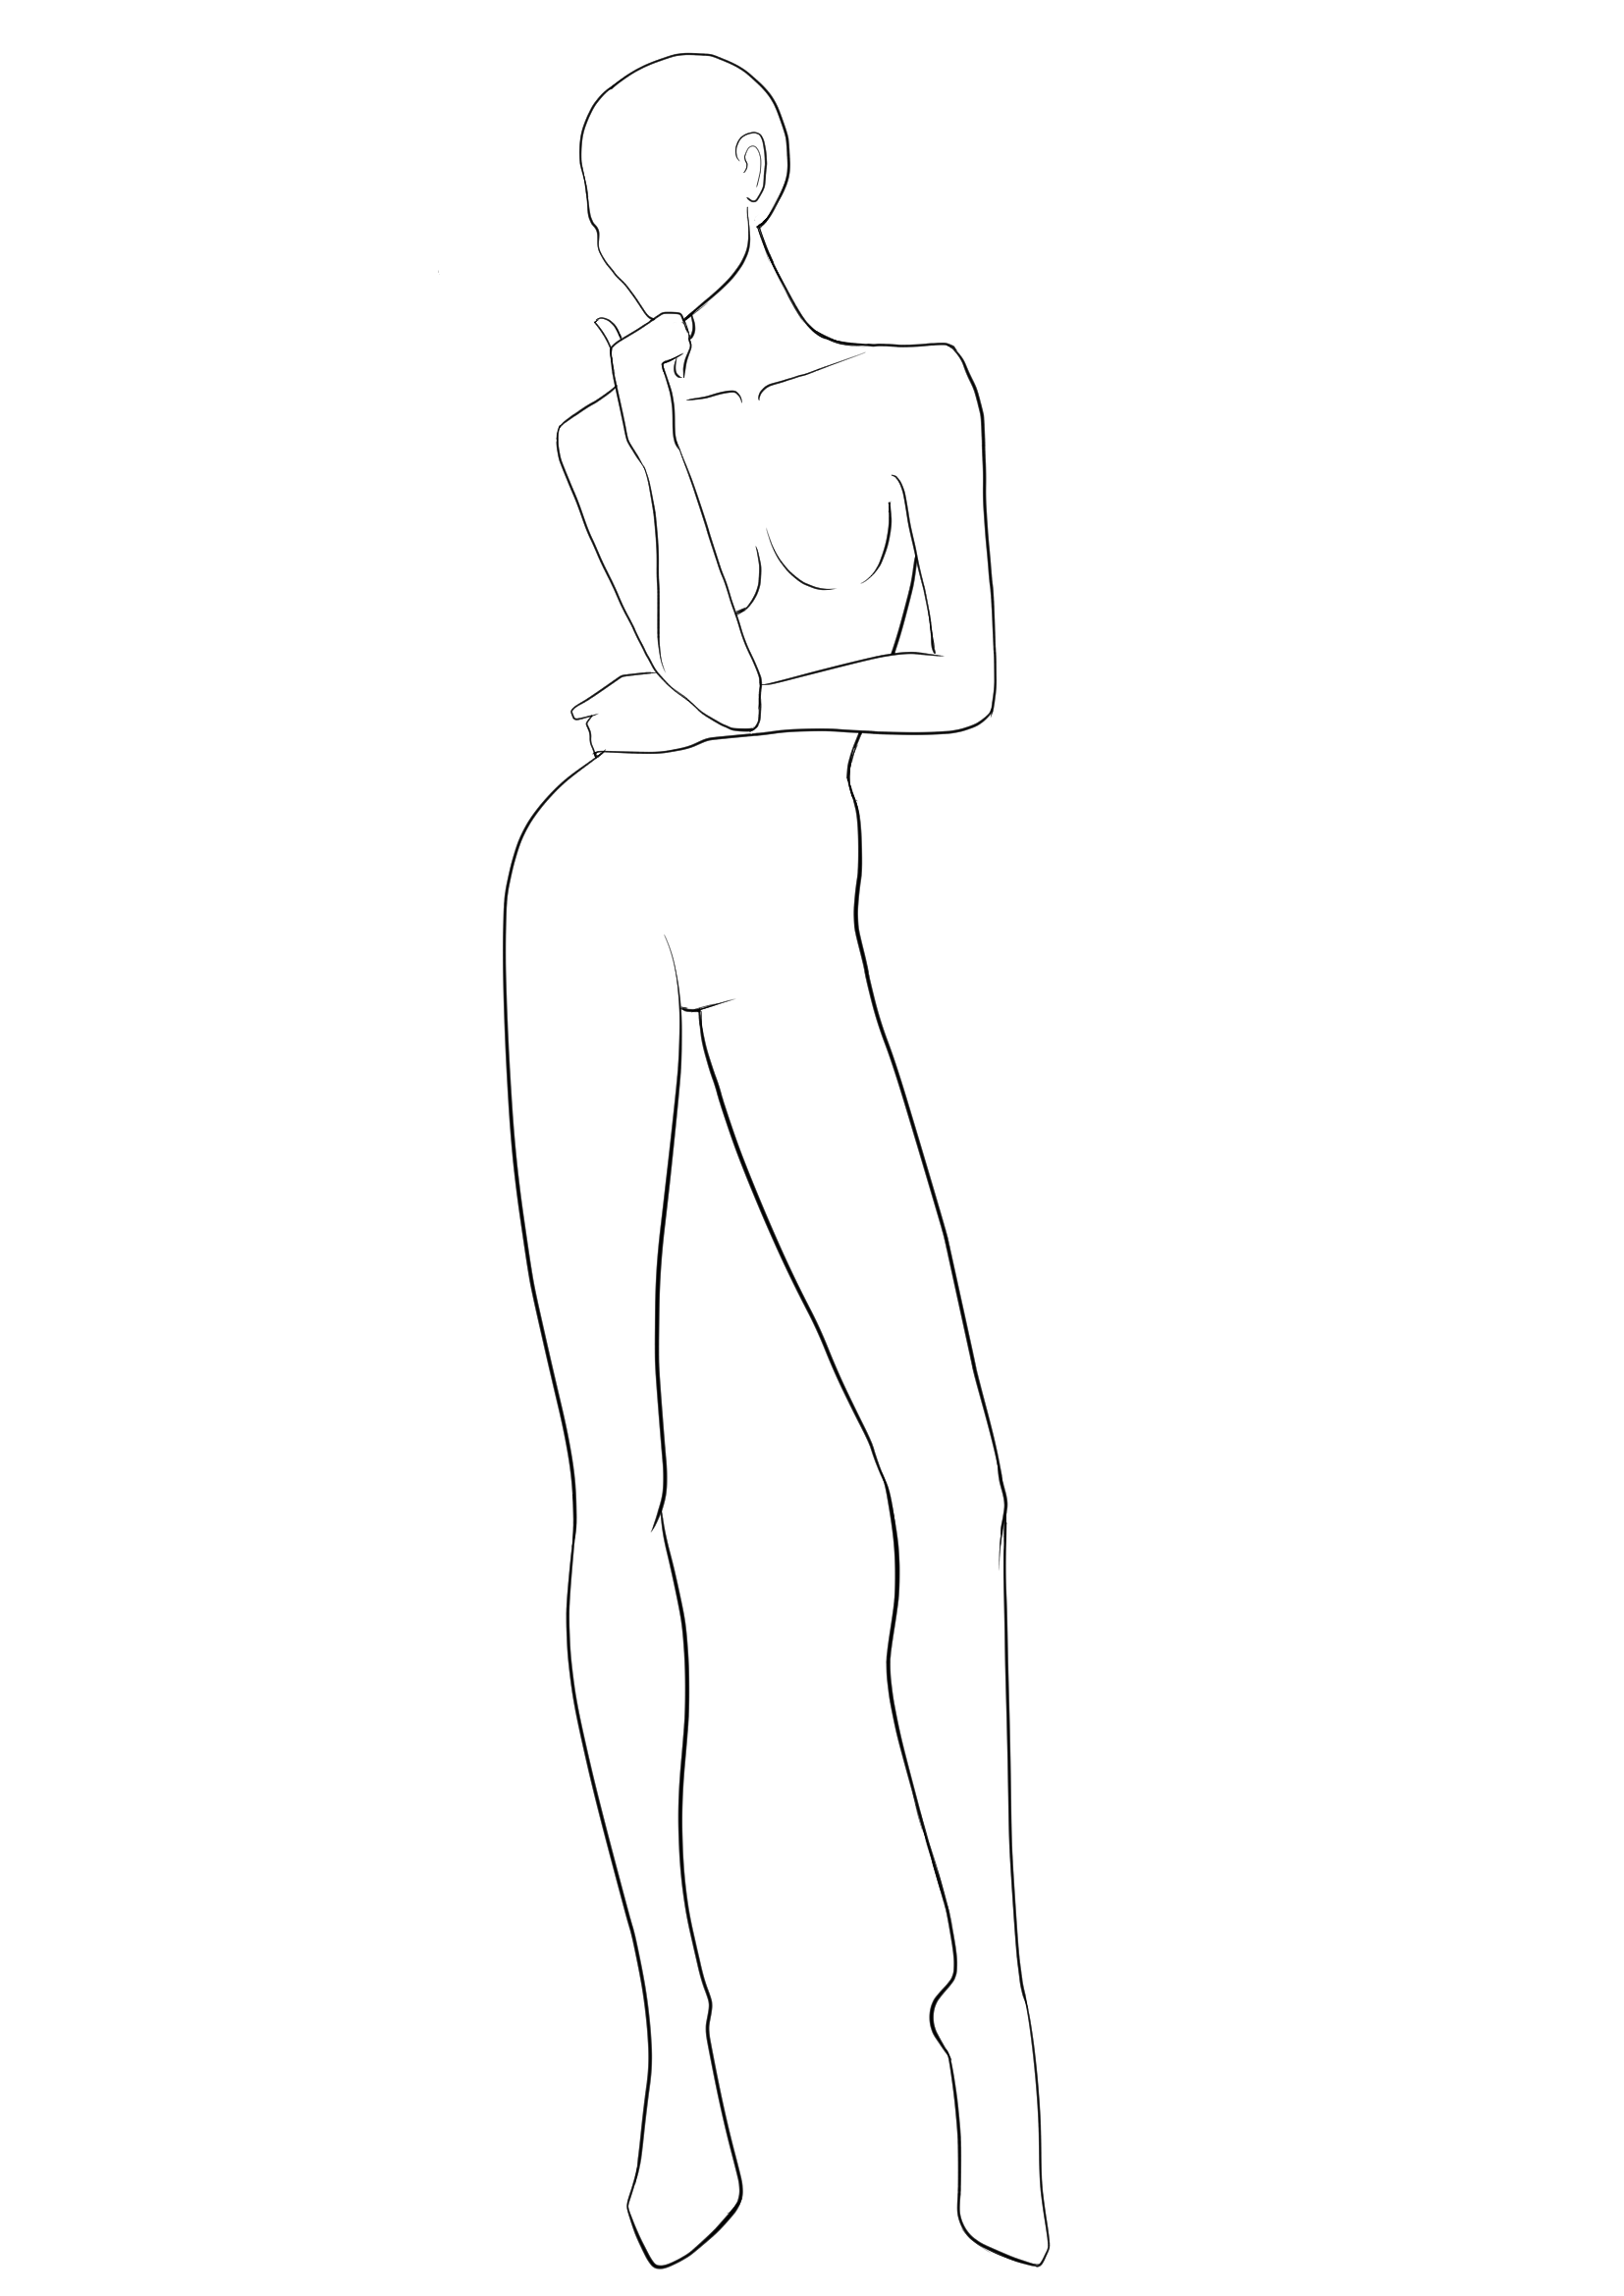 Front View Fashion Figure Template For Designing Fashion Sketches